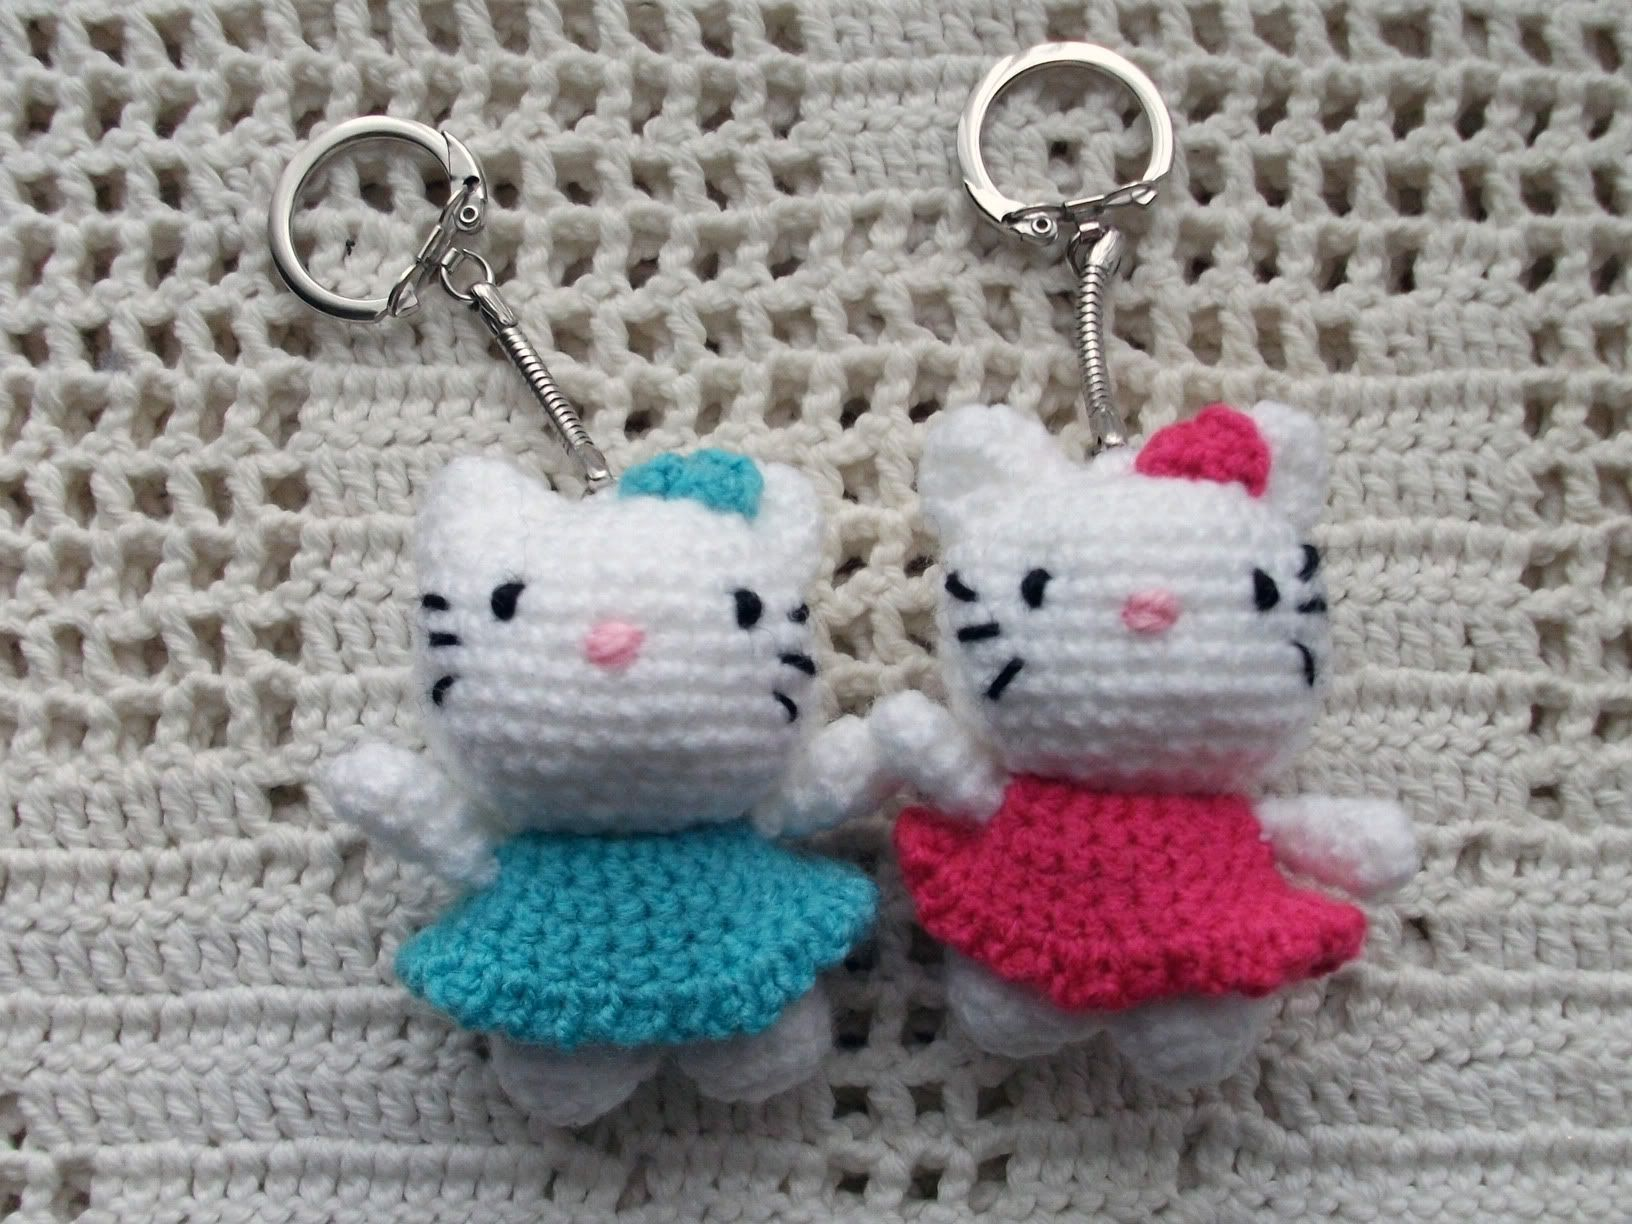 Free Amigurumi Crochet Pattern Over 300 Free Crochet Toy Patterns